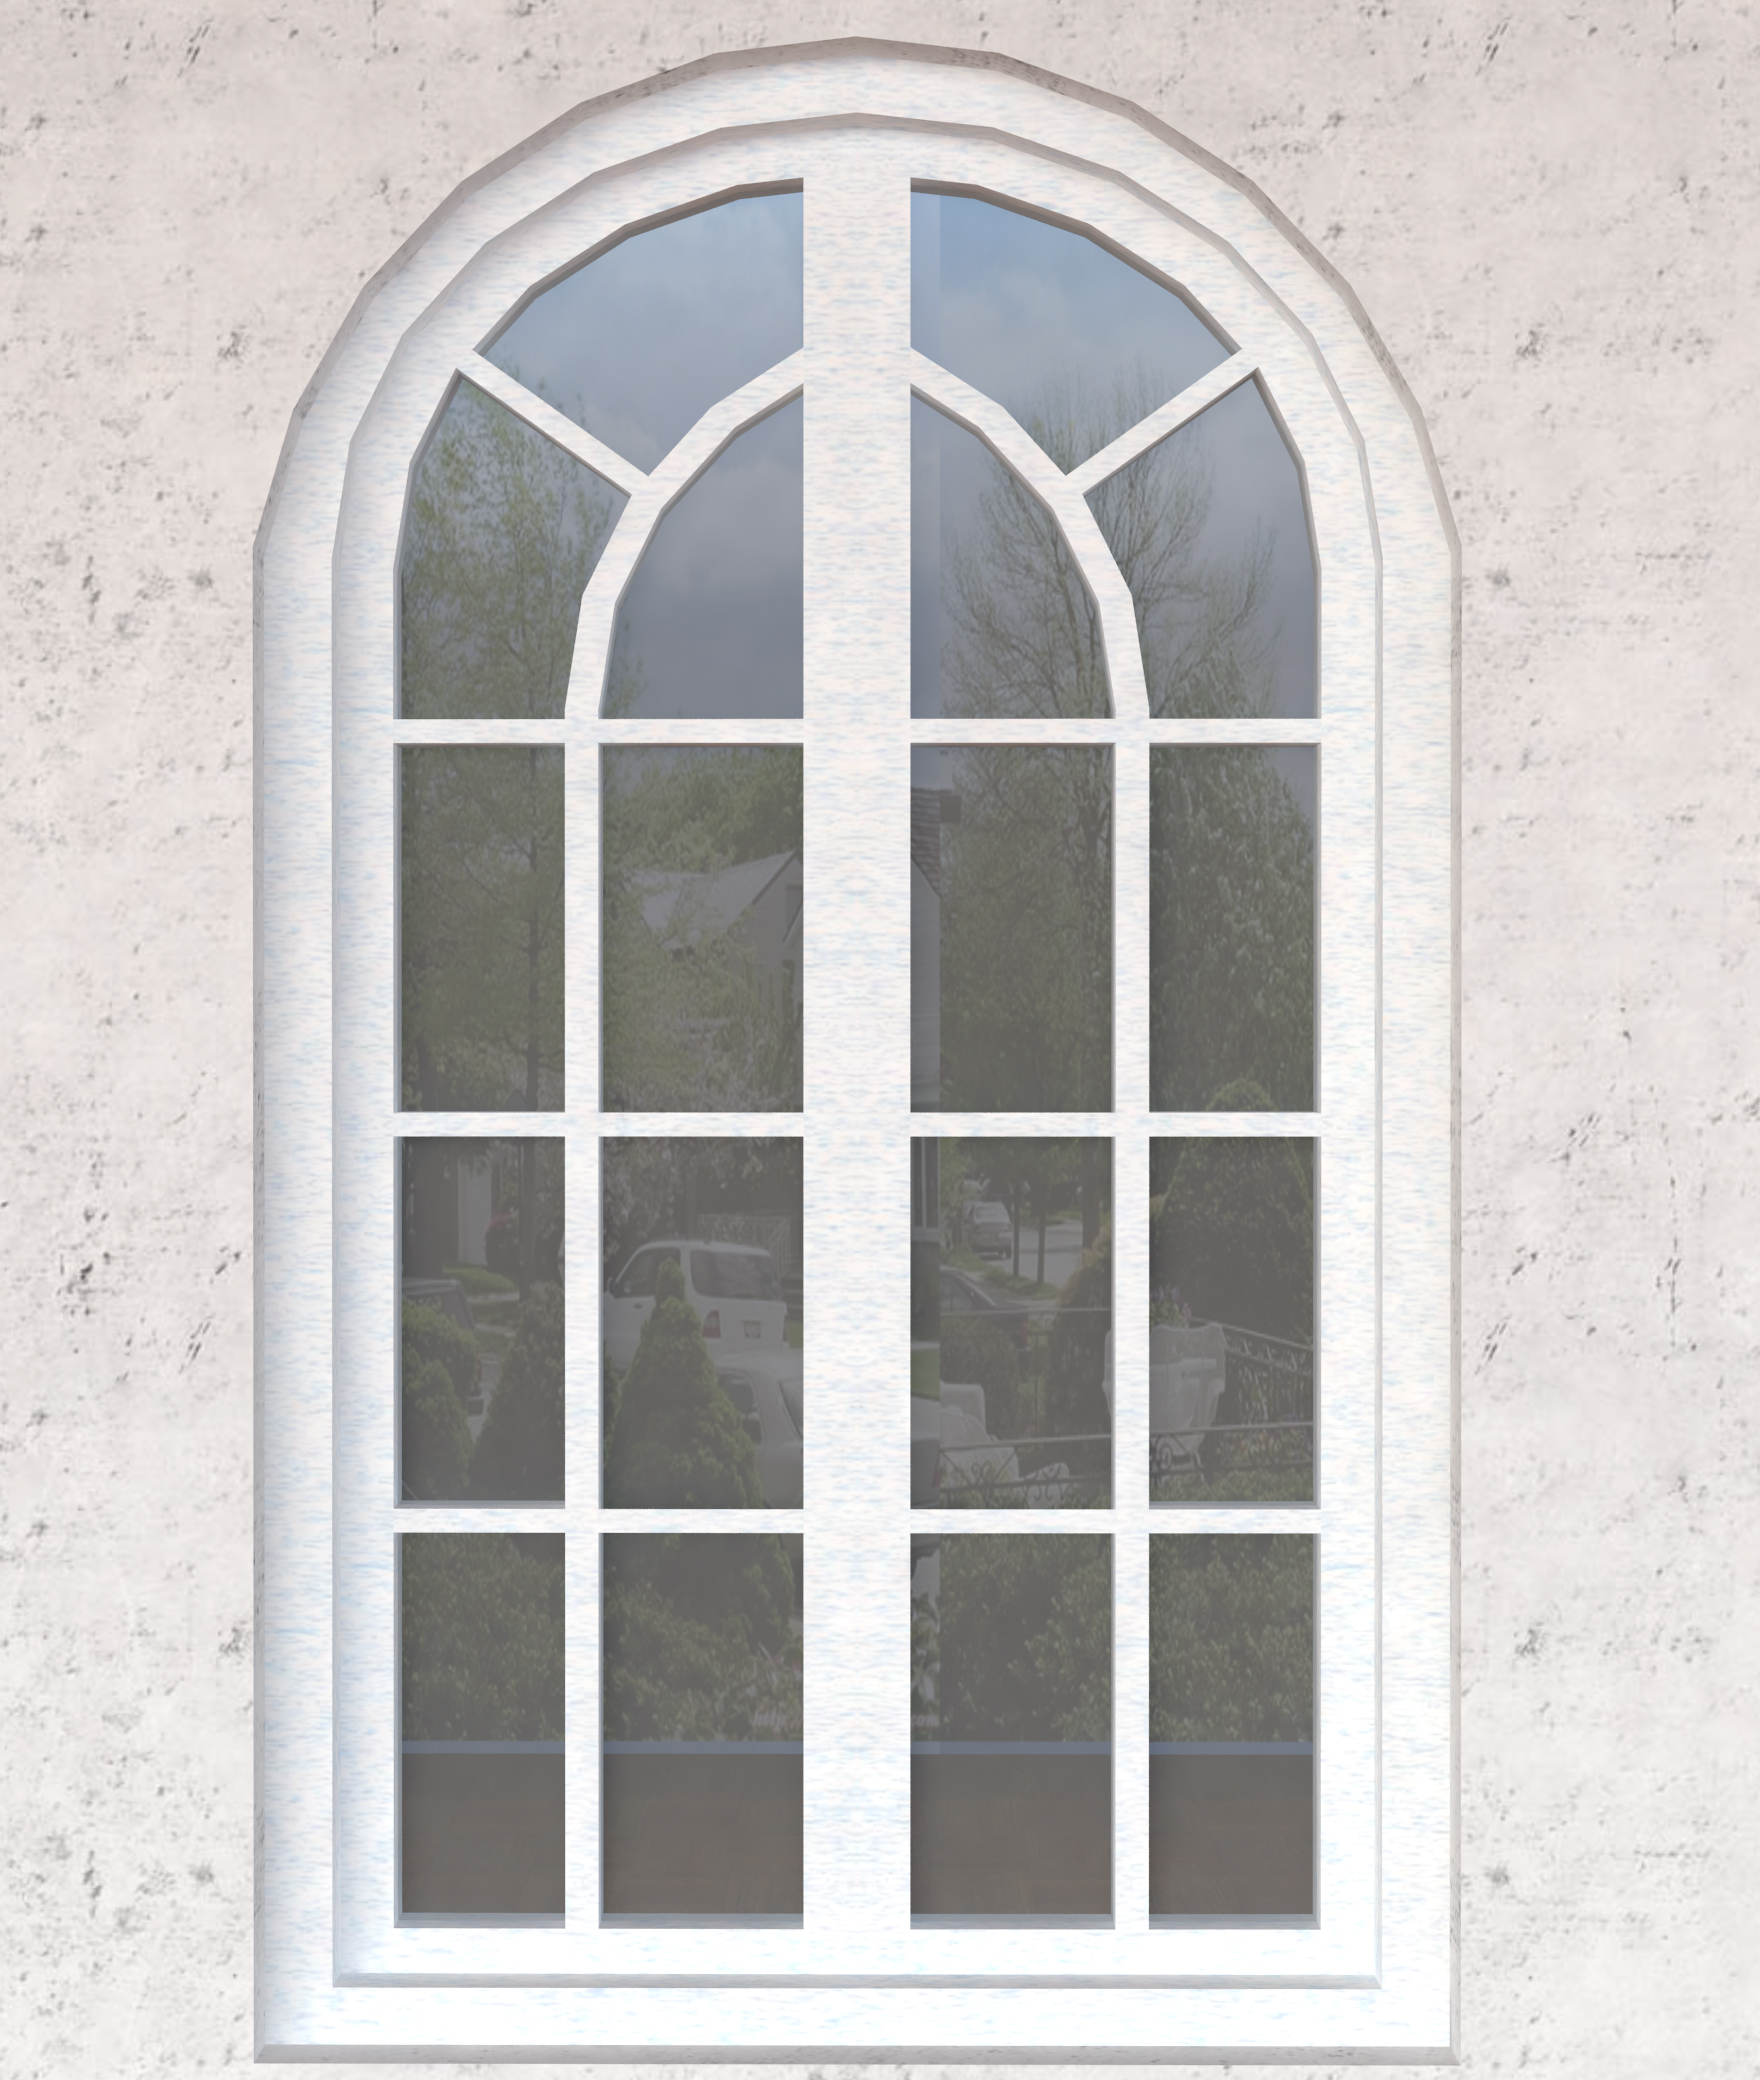 Bending Window